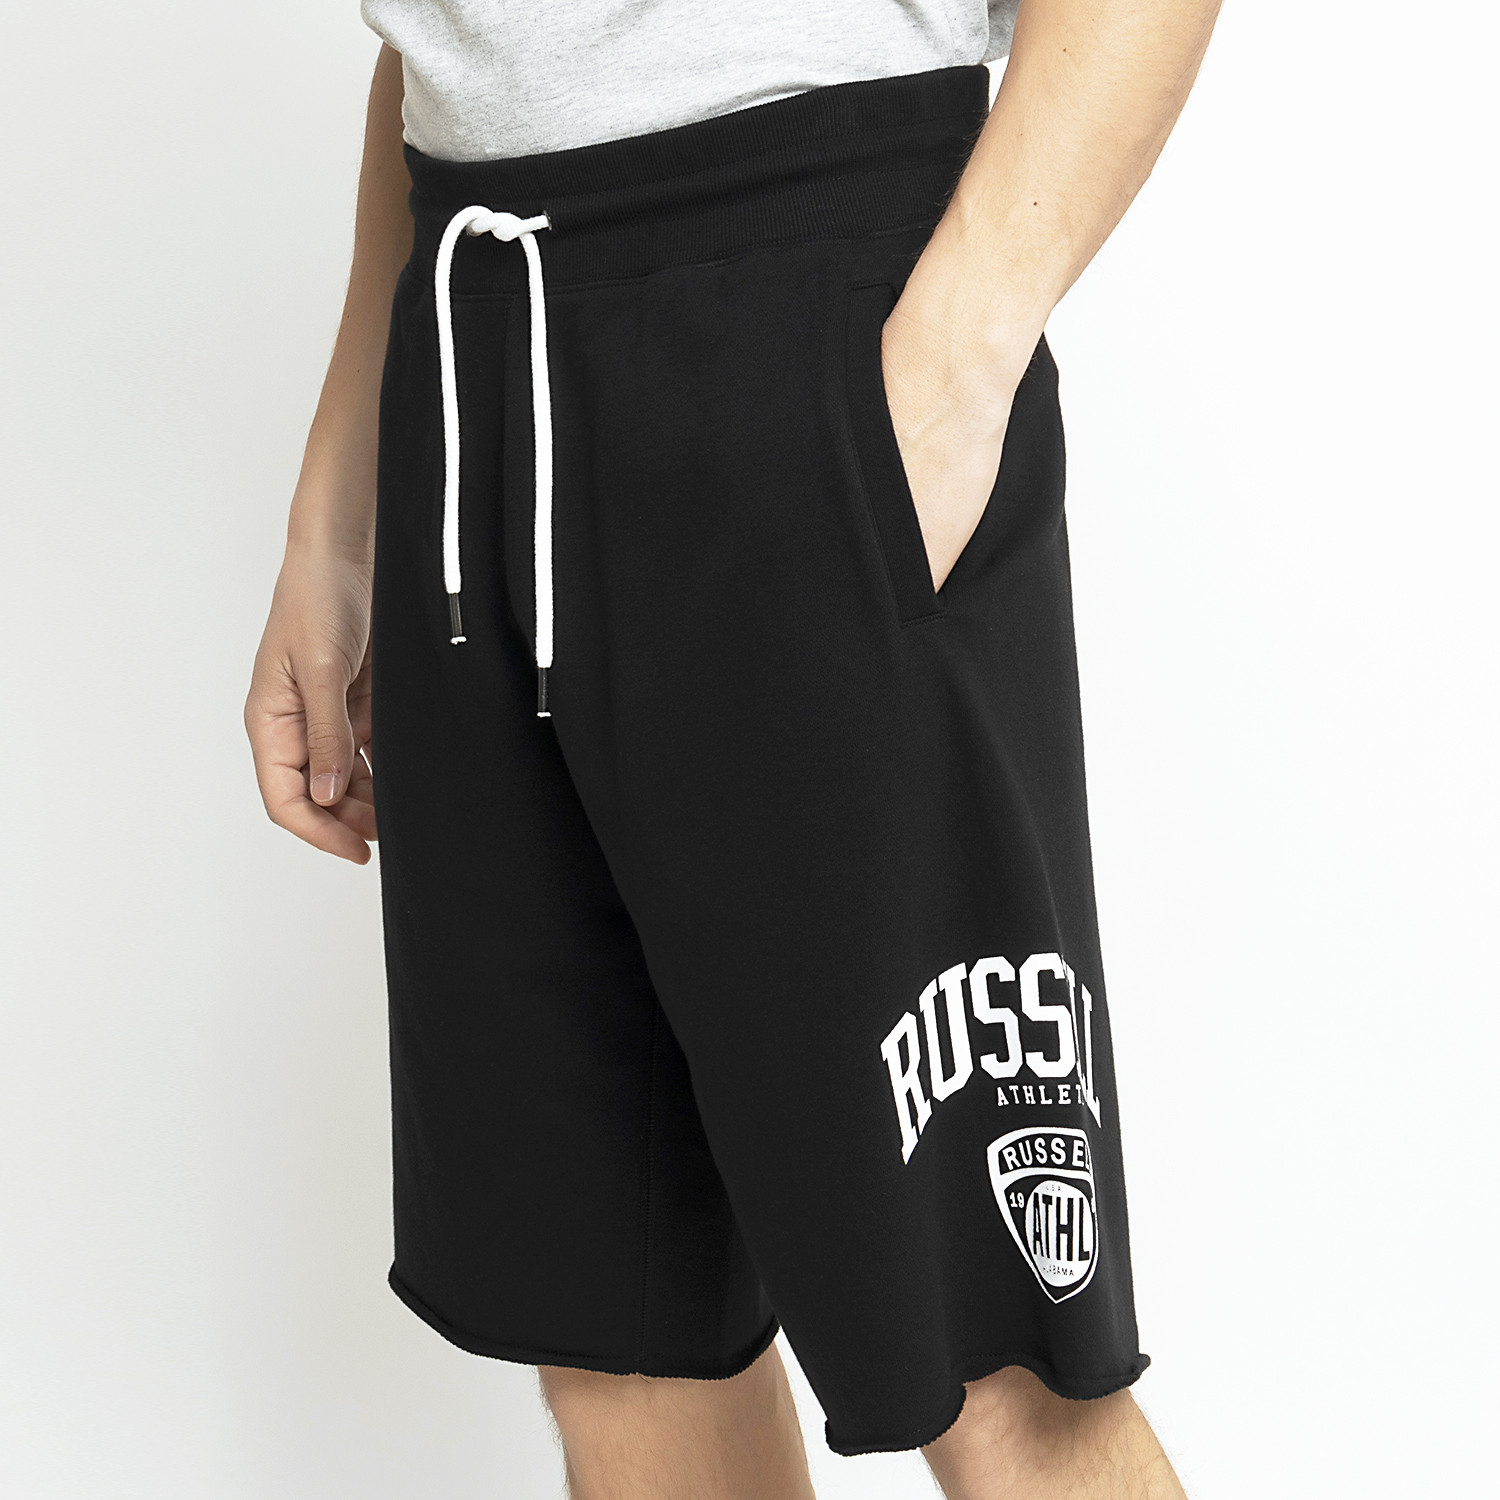 Russell Athletic Russell Athl-Collegiate Raw Edge Ανδρικό Σορτς (9000076017_001)